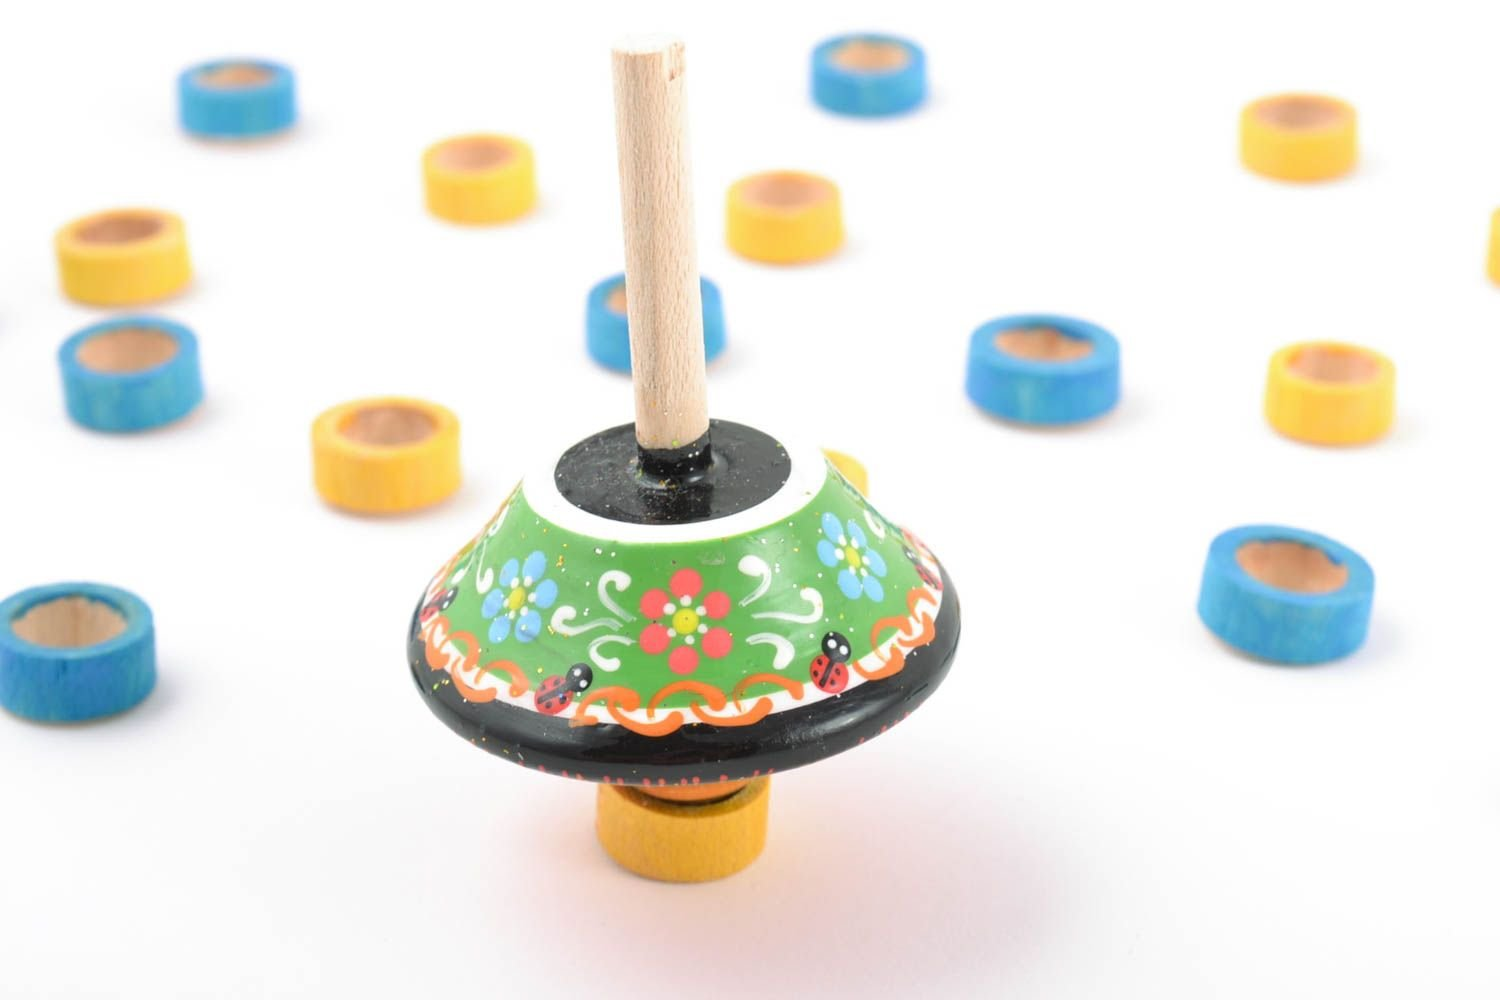 Beautiful Bright Painted Handmade Wooden Toy Spinning Top For Children